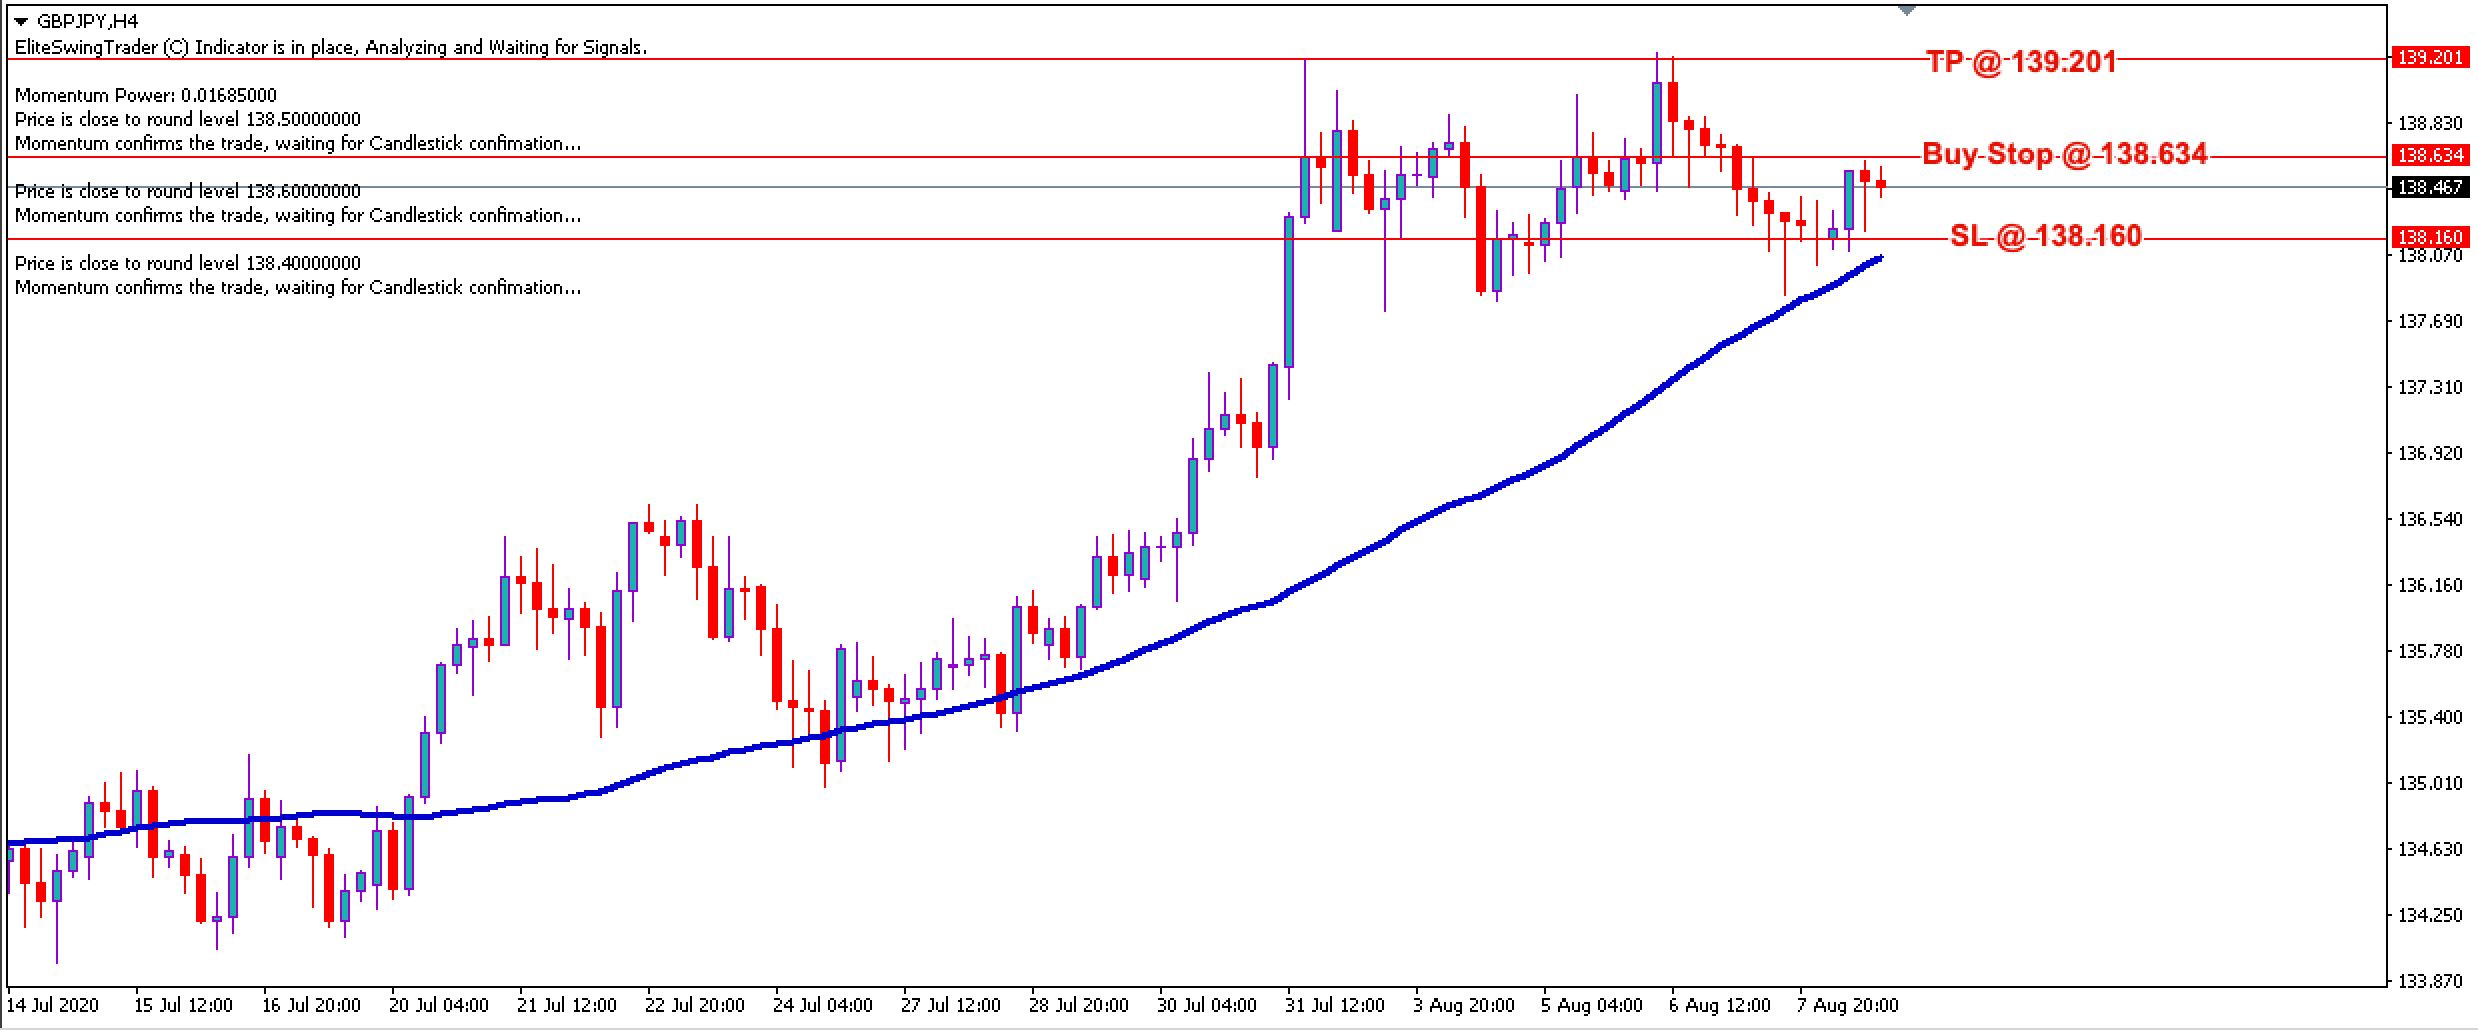 GBP/JPY Daily Price Forecast - 10th August 2020